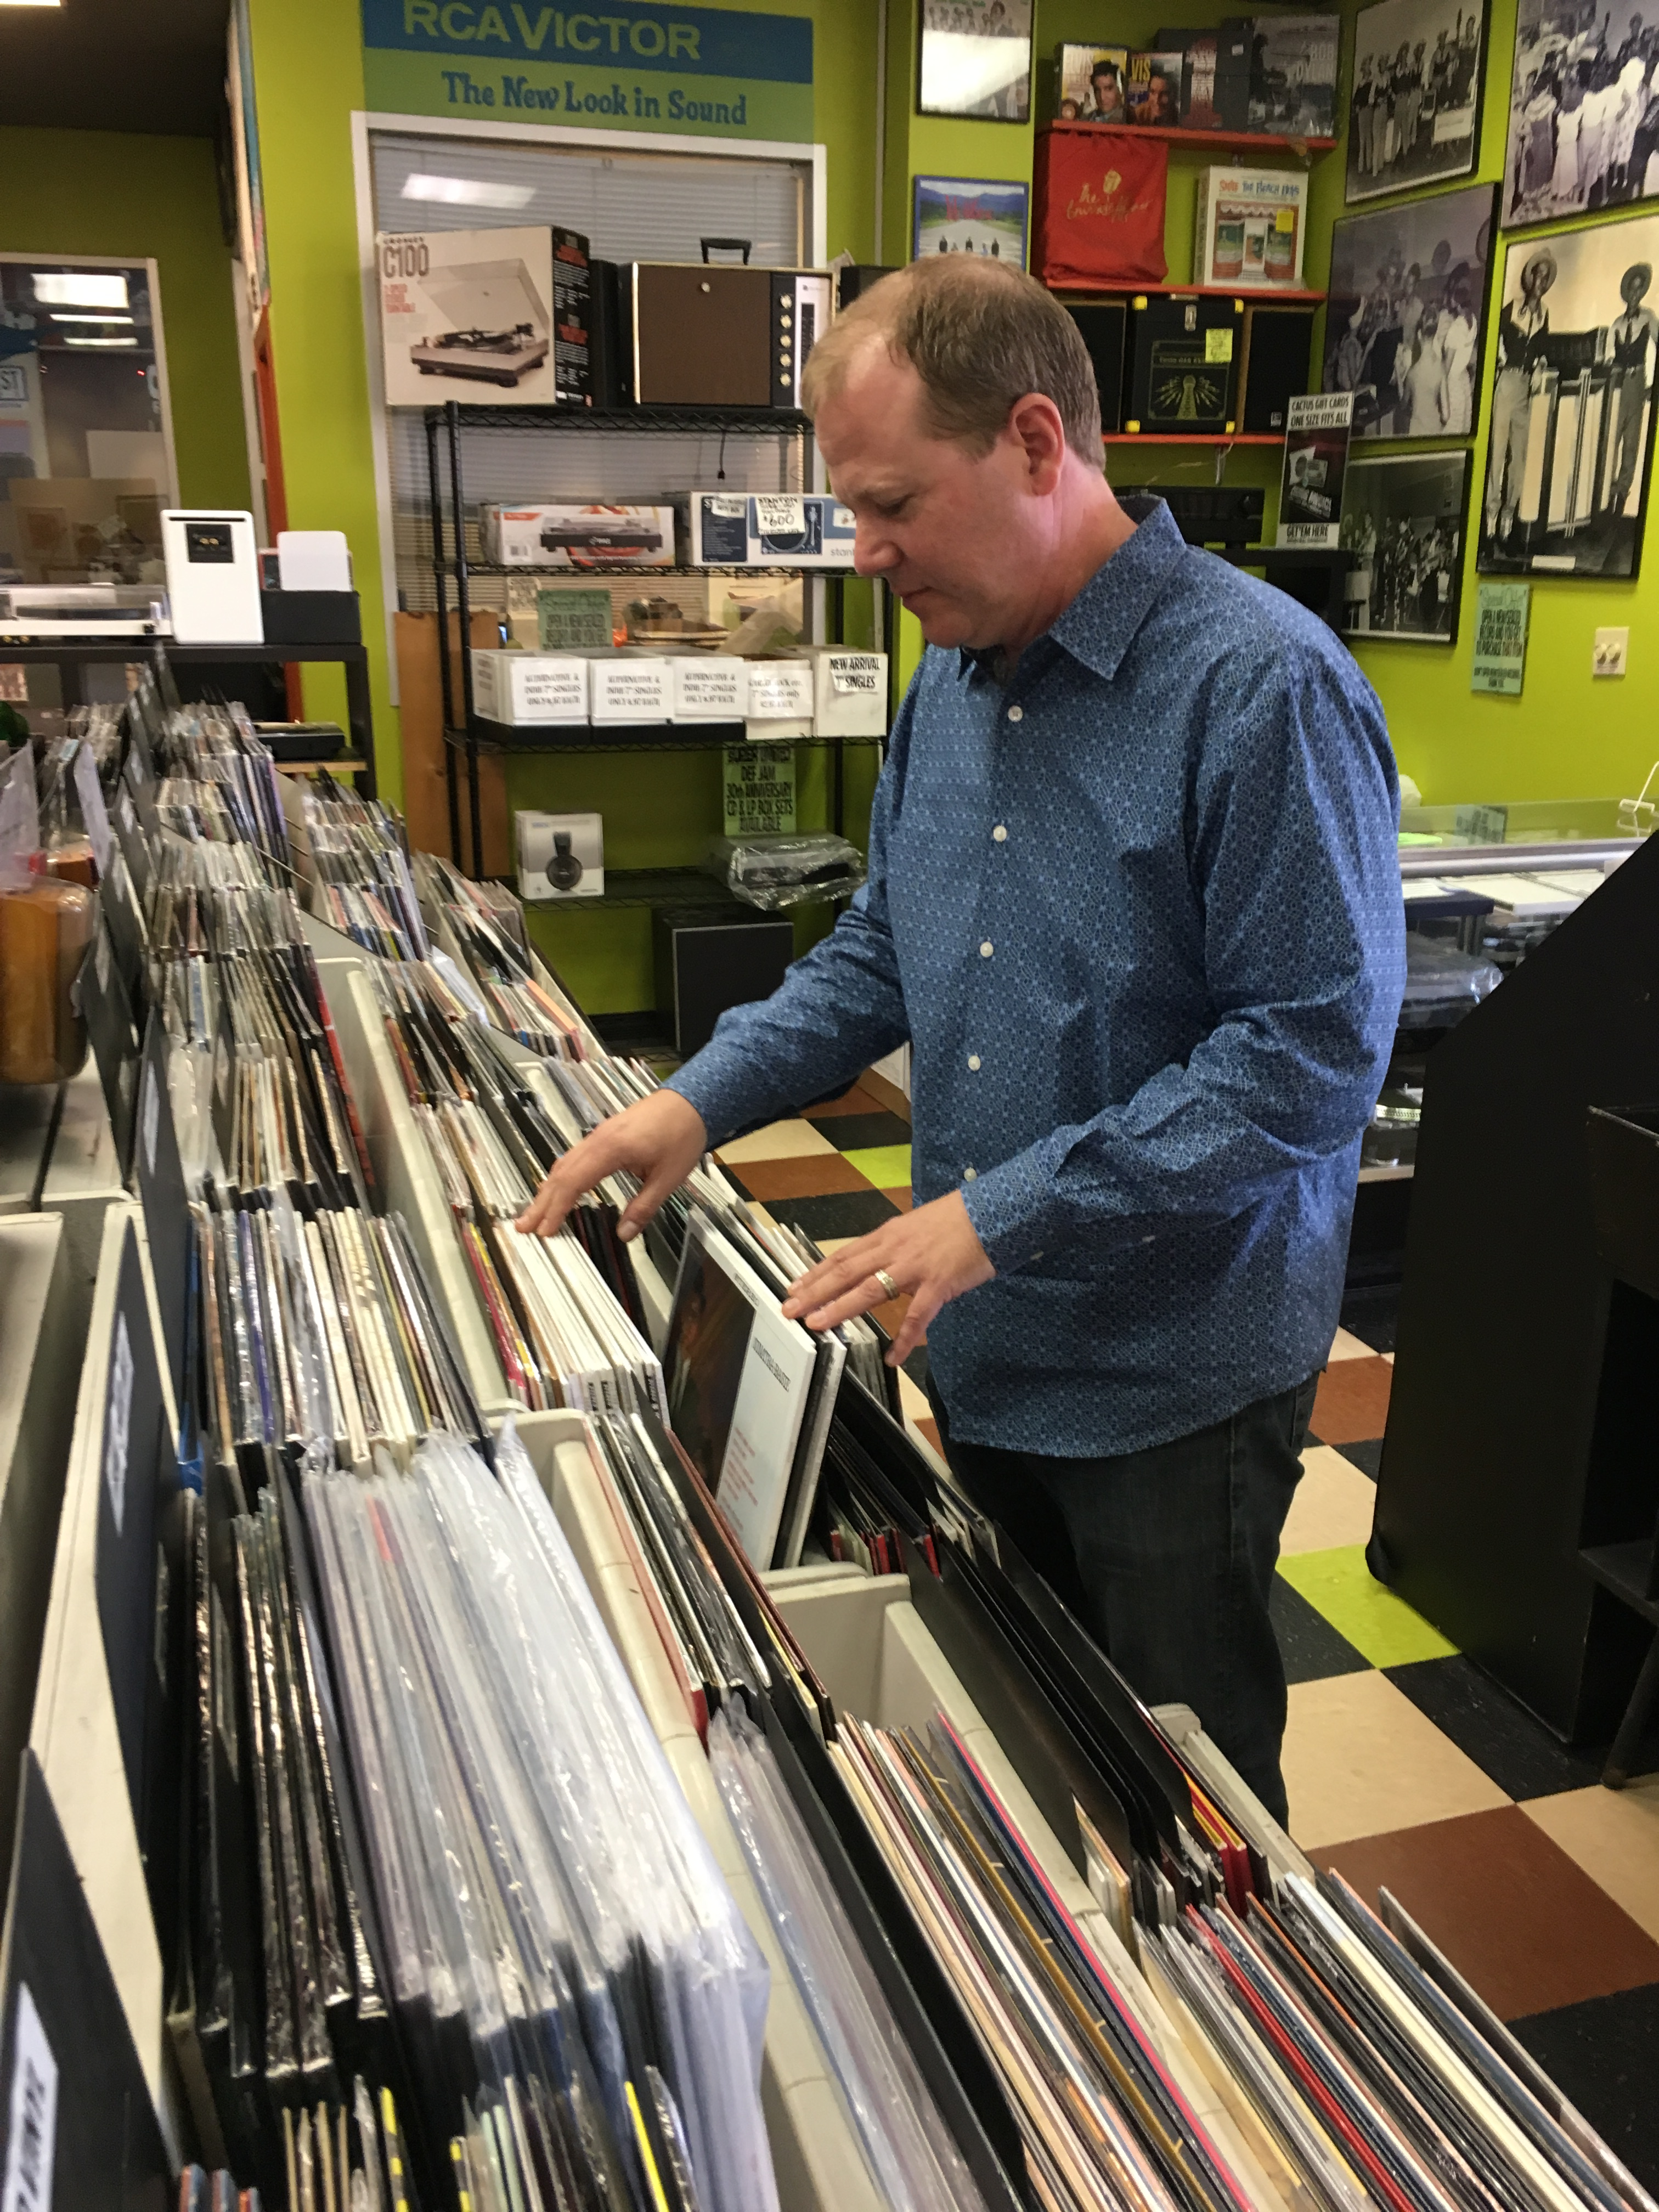 Quinn Bishop from Cactus Music looks through the store's collection of vinyl records – a format that's enjoying a resurgence.